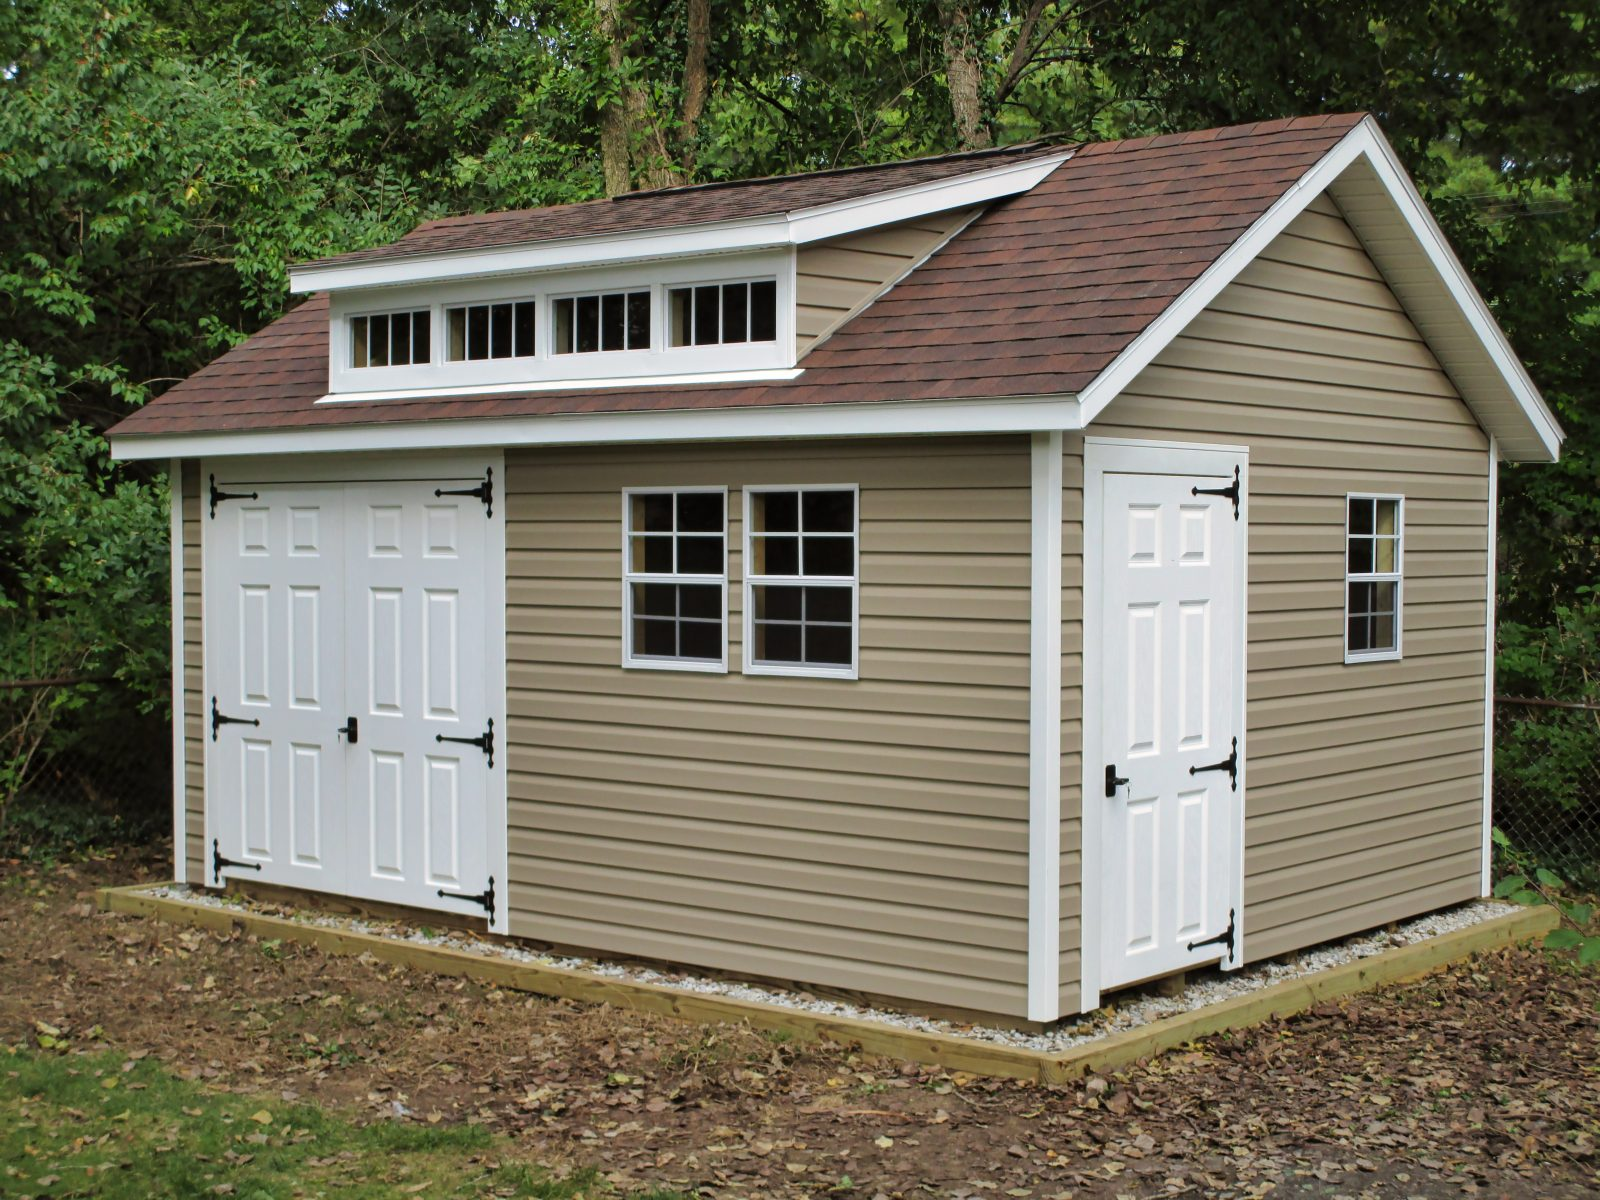 Cottage Sheds For Sale In Central Ohio | Beachy Barns